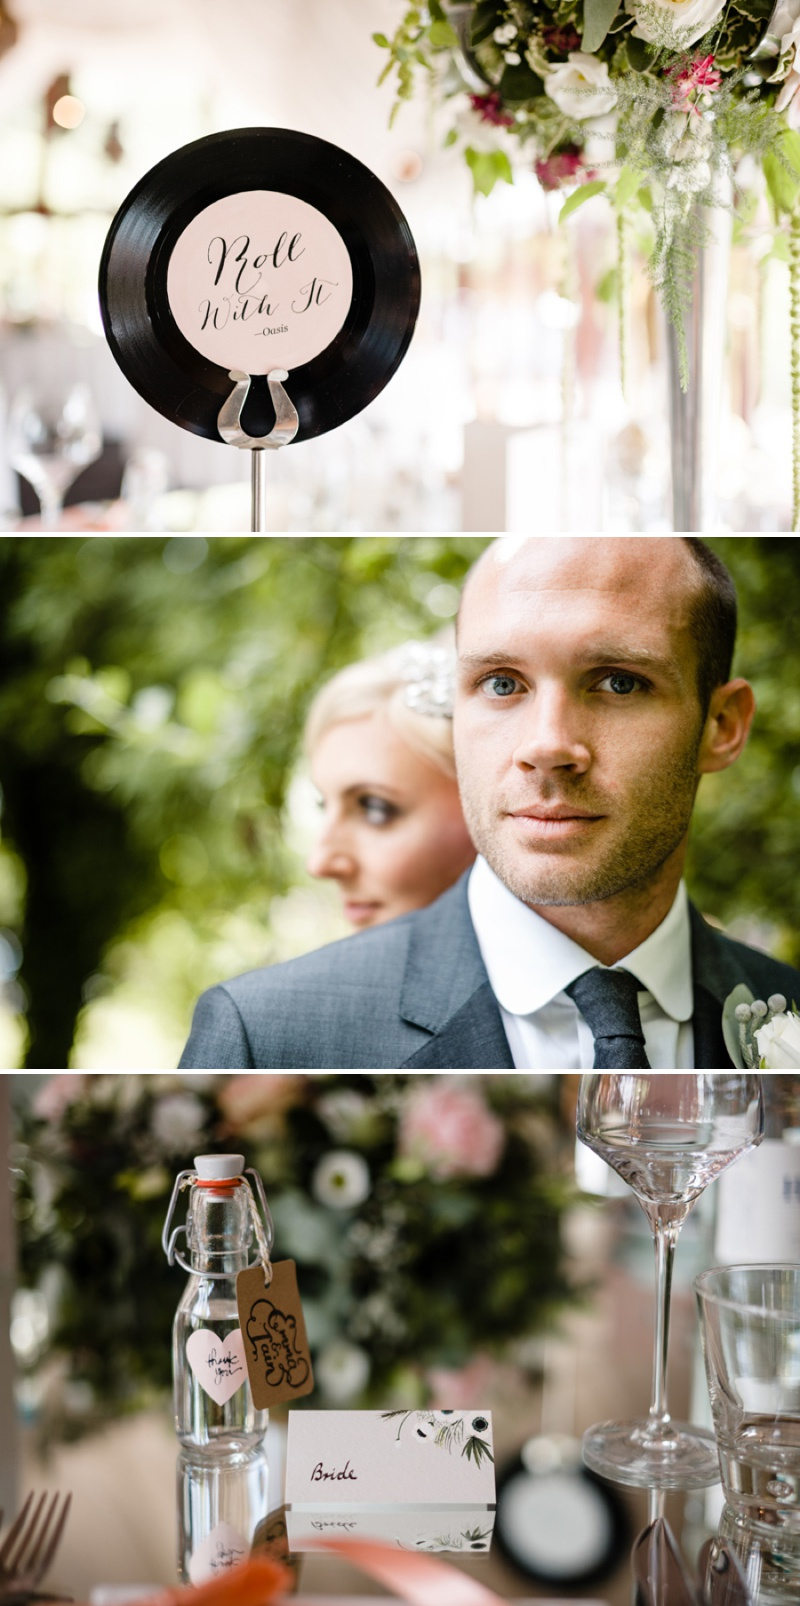 A Beautiful Music Inspired Wedding At The Crazy Bear In Stadhampton With A Jenny Packham Esme Wedding Dress and A Pink And Cream Avalanche Rose Bouquet._0012